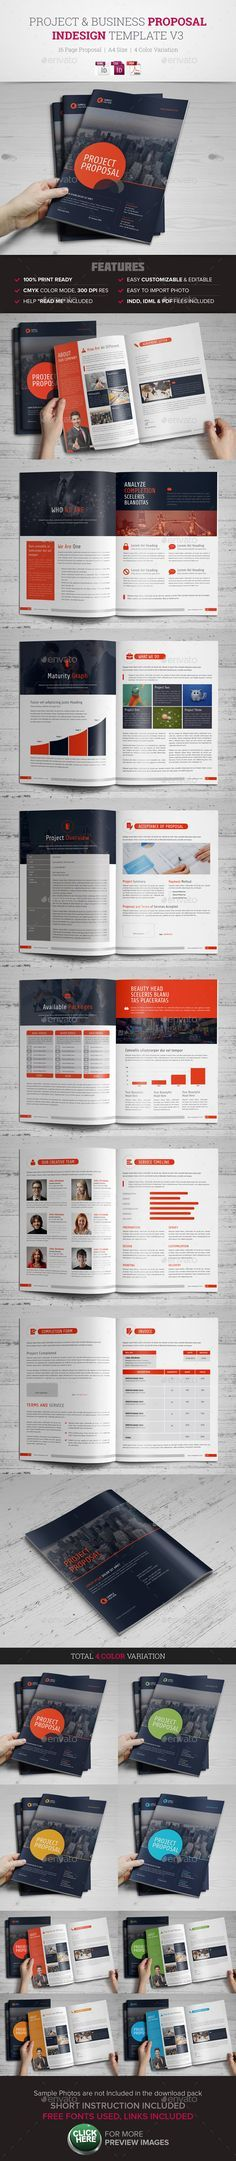 The 25+ best Business proposal template ideas on Pinterest - business plan templates microsoft